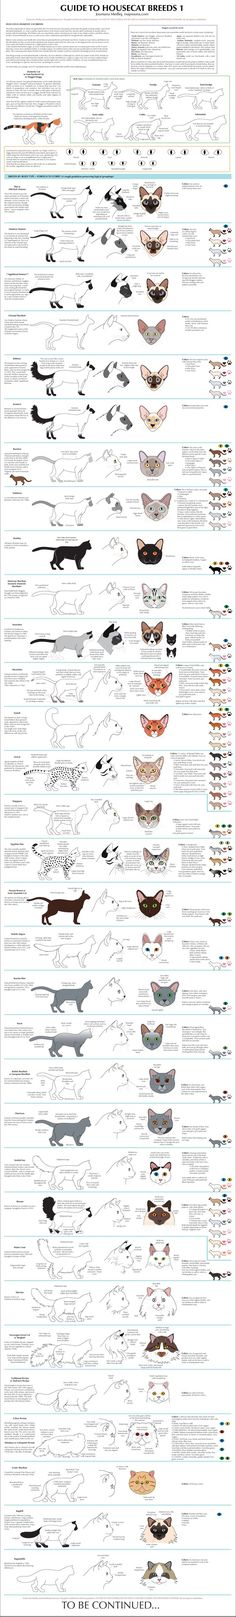 Guide to Housecat Breeds Part 1 by `majnouna on deviantART >>>*Click for site, then click on picture again for larger version. There is also Part 2 at the site, and other art work.